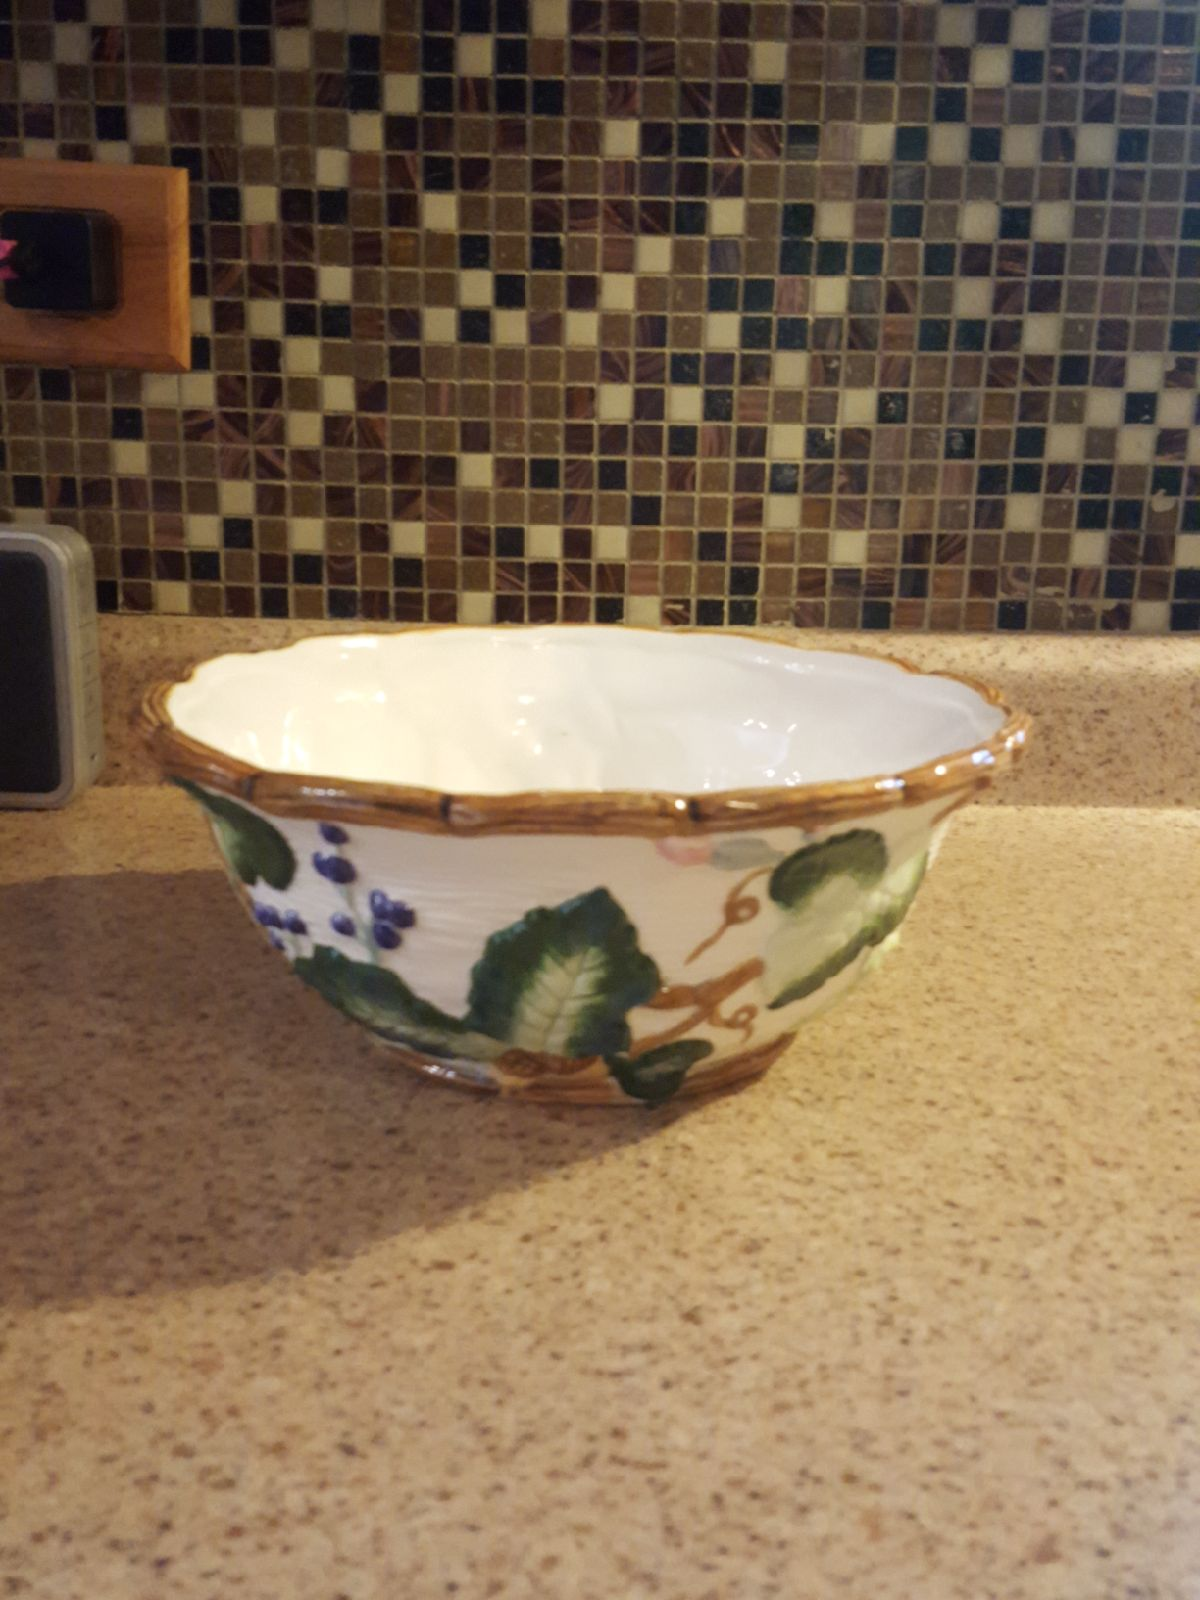 Squash Blossom Serving Bowl